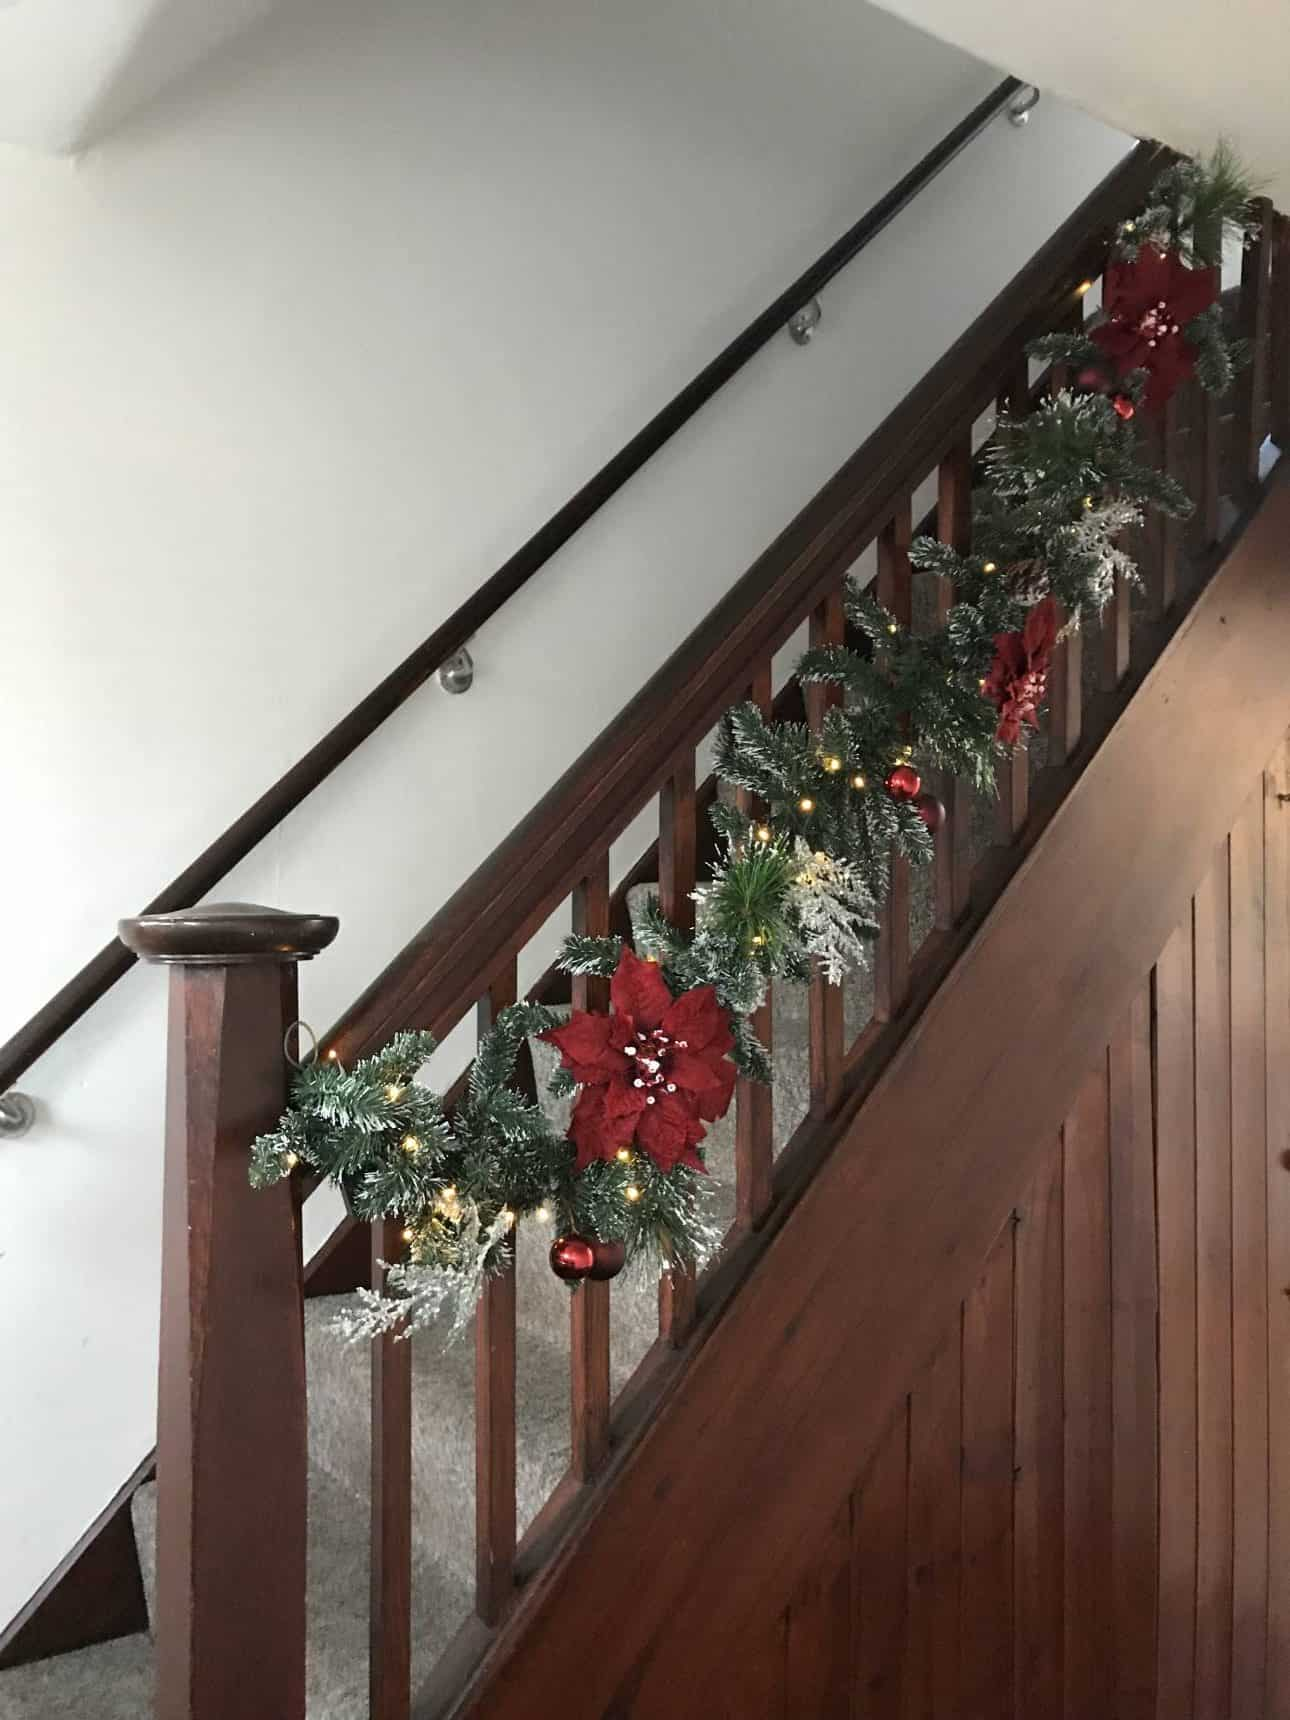 Stunning Selection of Christmas Decorations